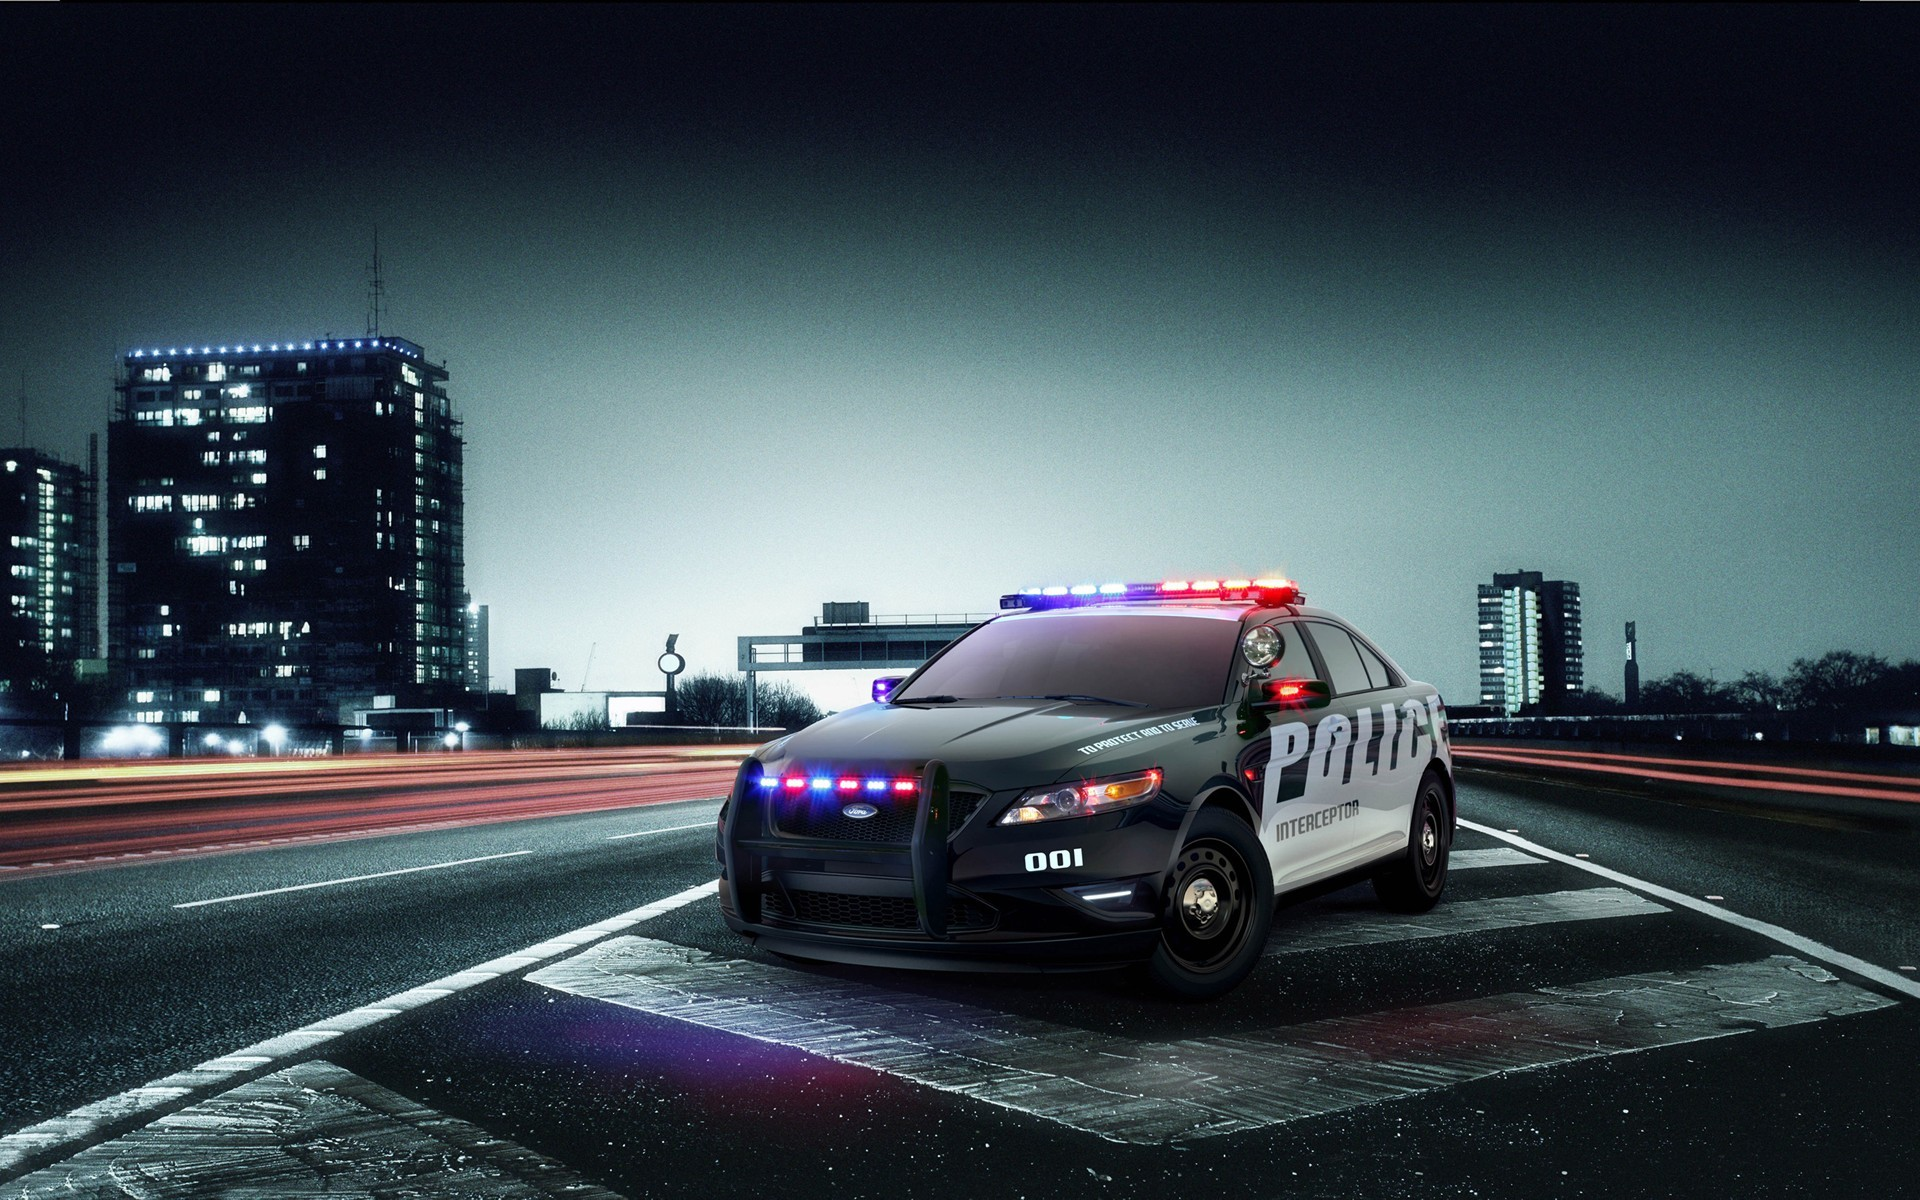 Ford Police Interceptor Wallpapers | HD Wallpapers